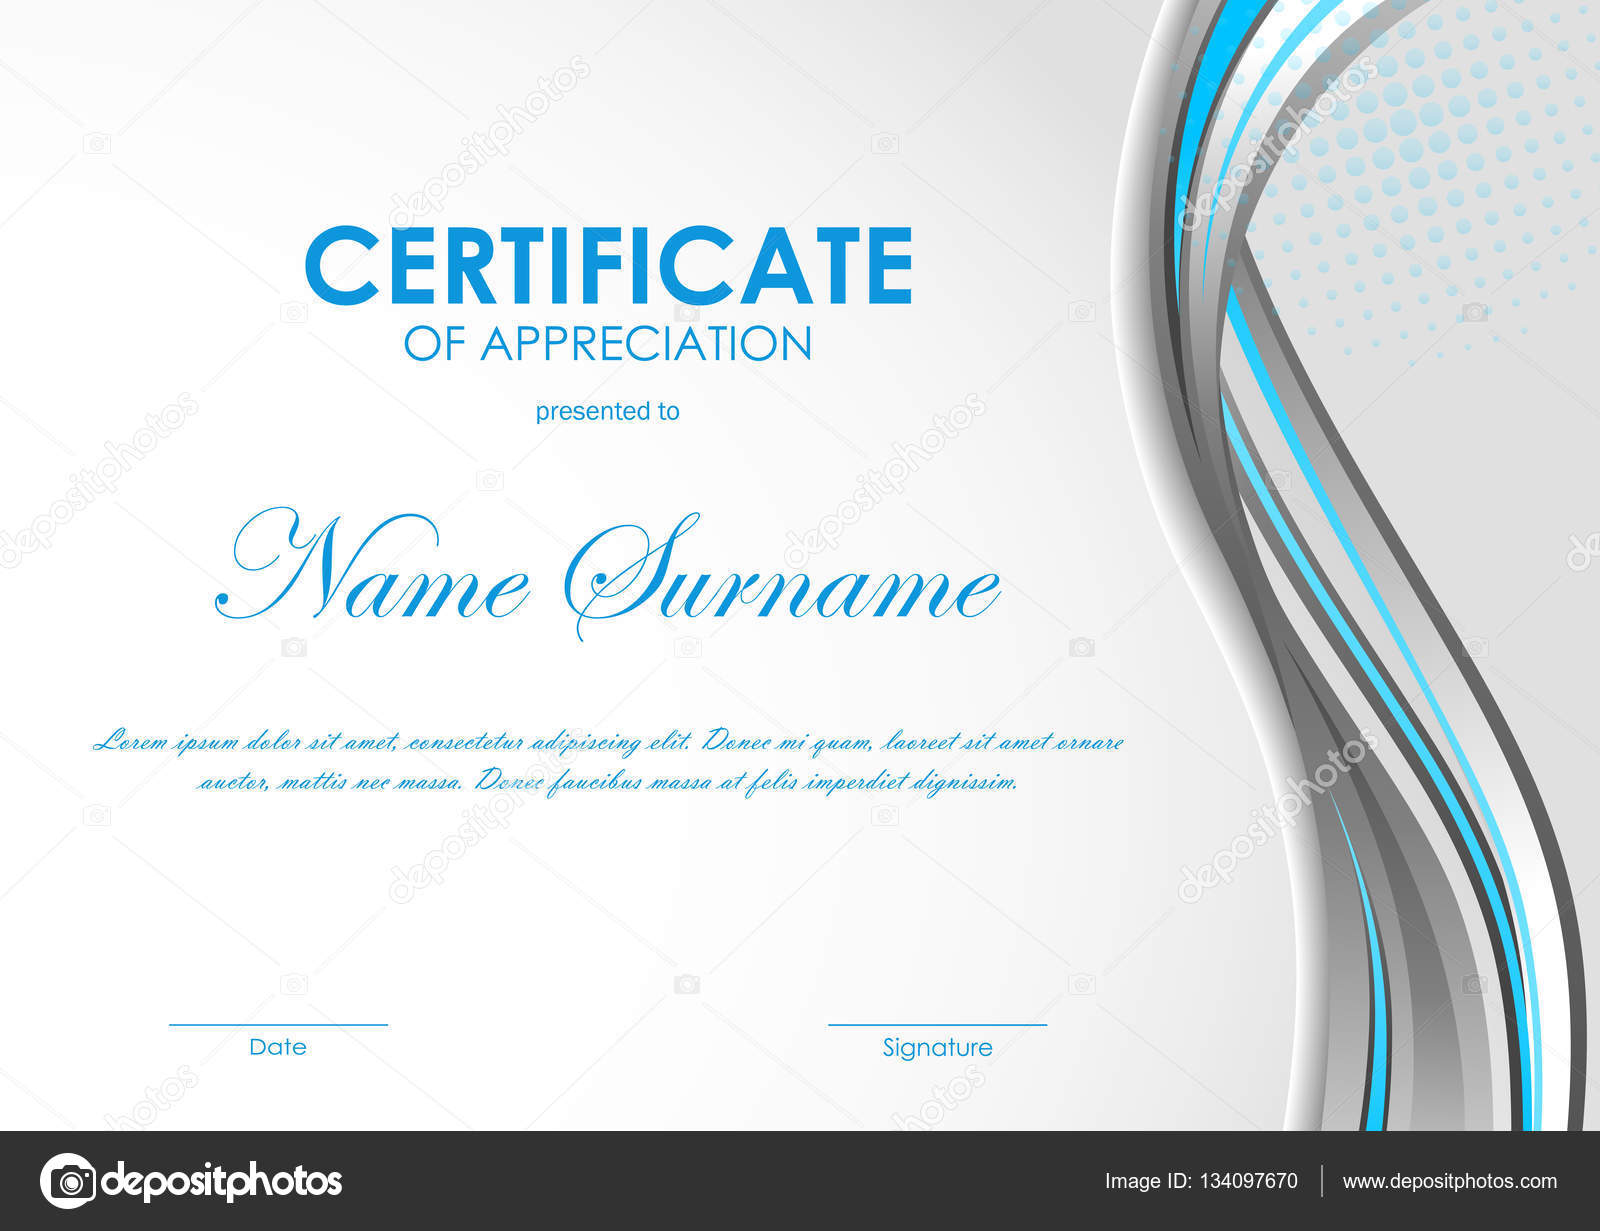 Certificate of appreciation template — Stock Vector © Denchik #134097670